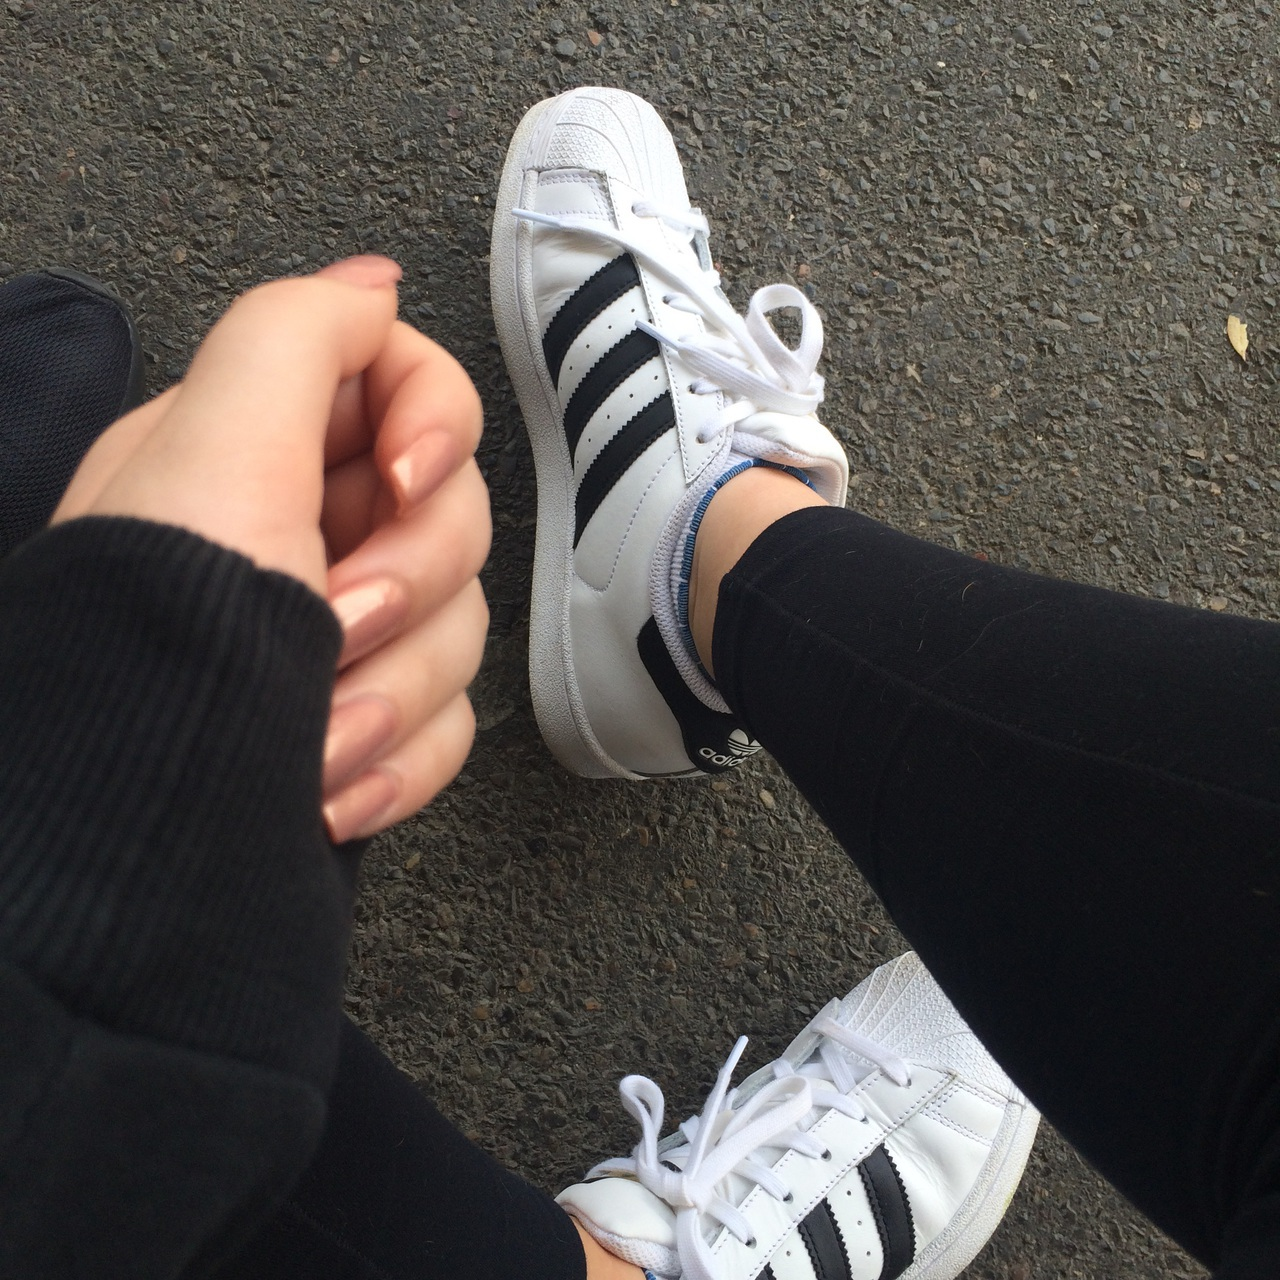 adidas, aesthetic, black, clothes, dark, fashion, girl, grunge, hands, kicks, light, nails, nike, outfit, path, road, shoes, superstars, white